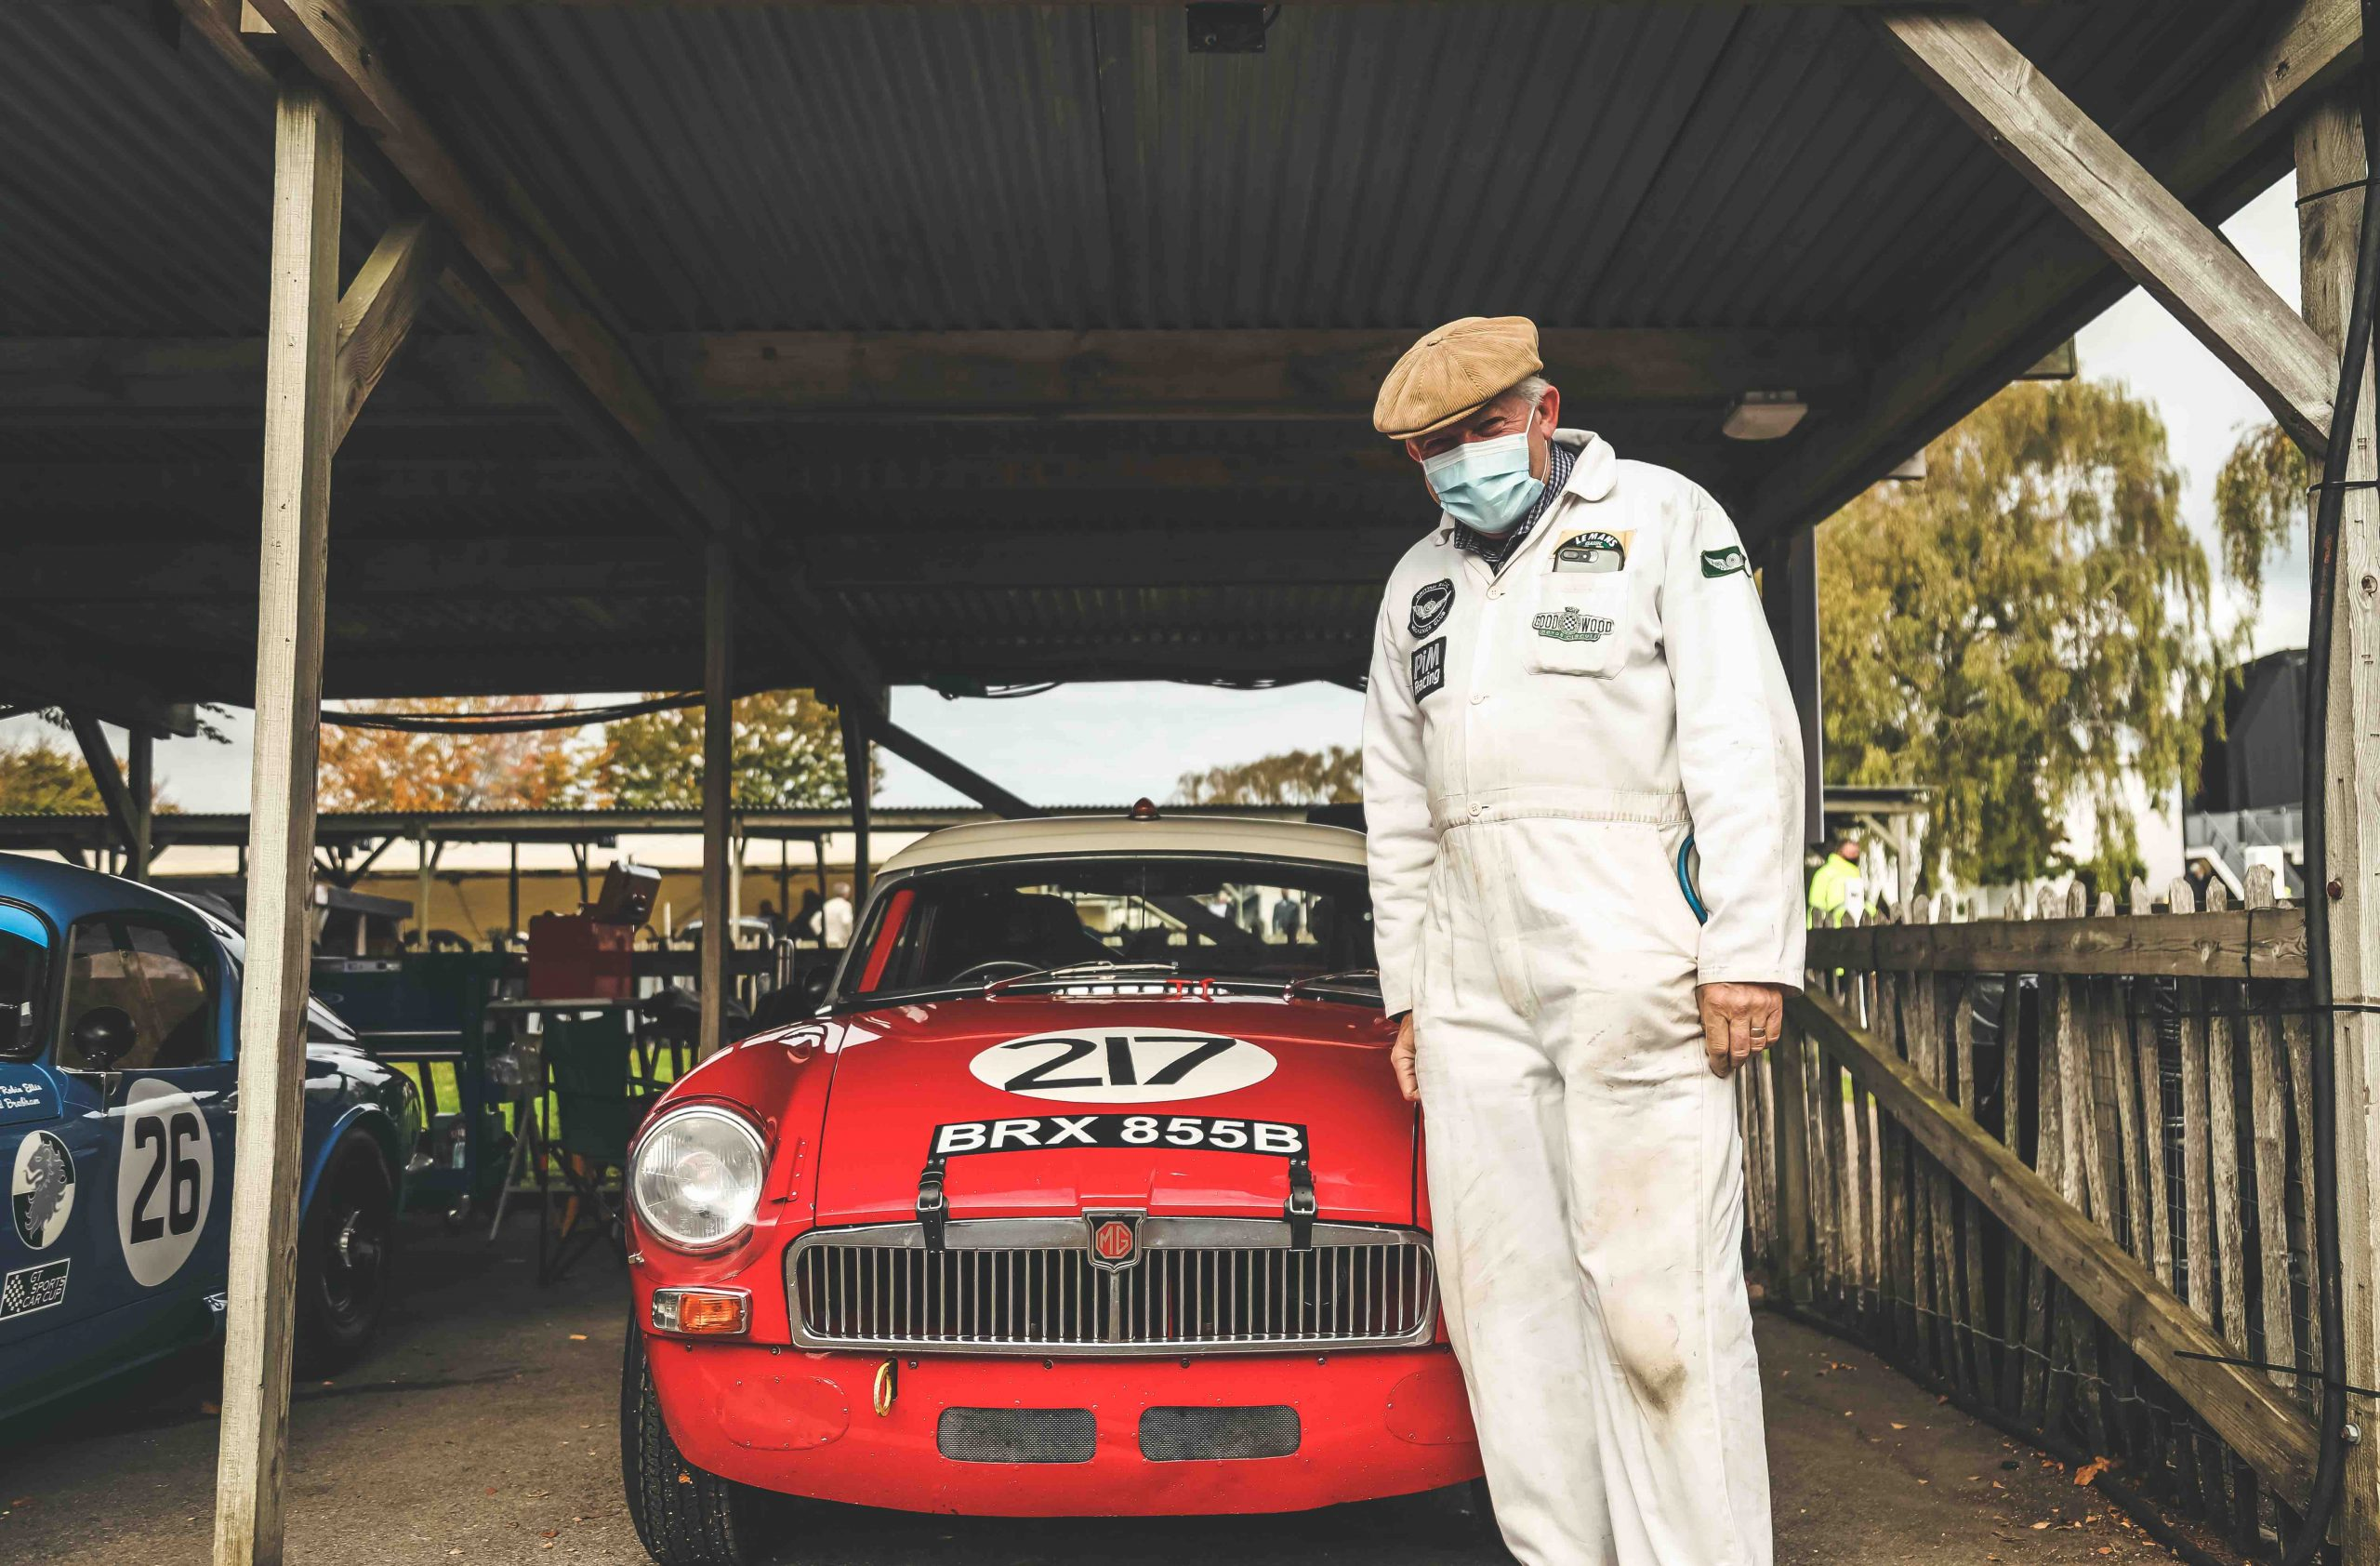 Meet the unsung heroes of Goodwood SpeedWeek